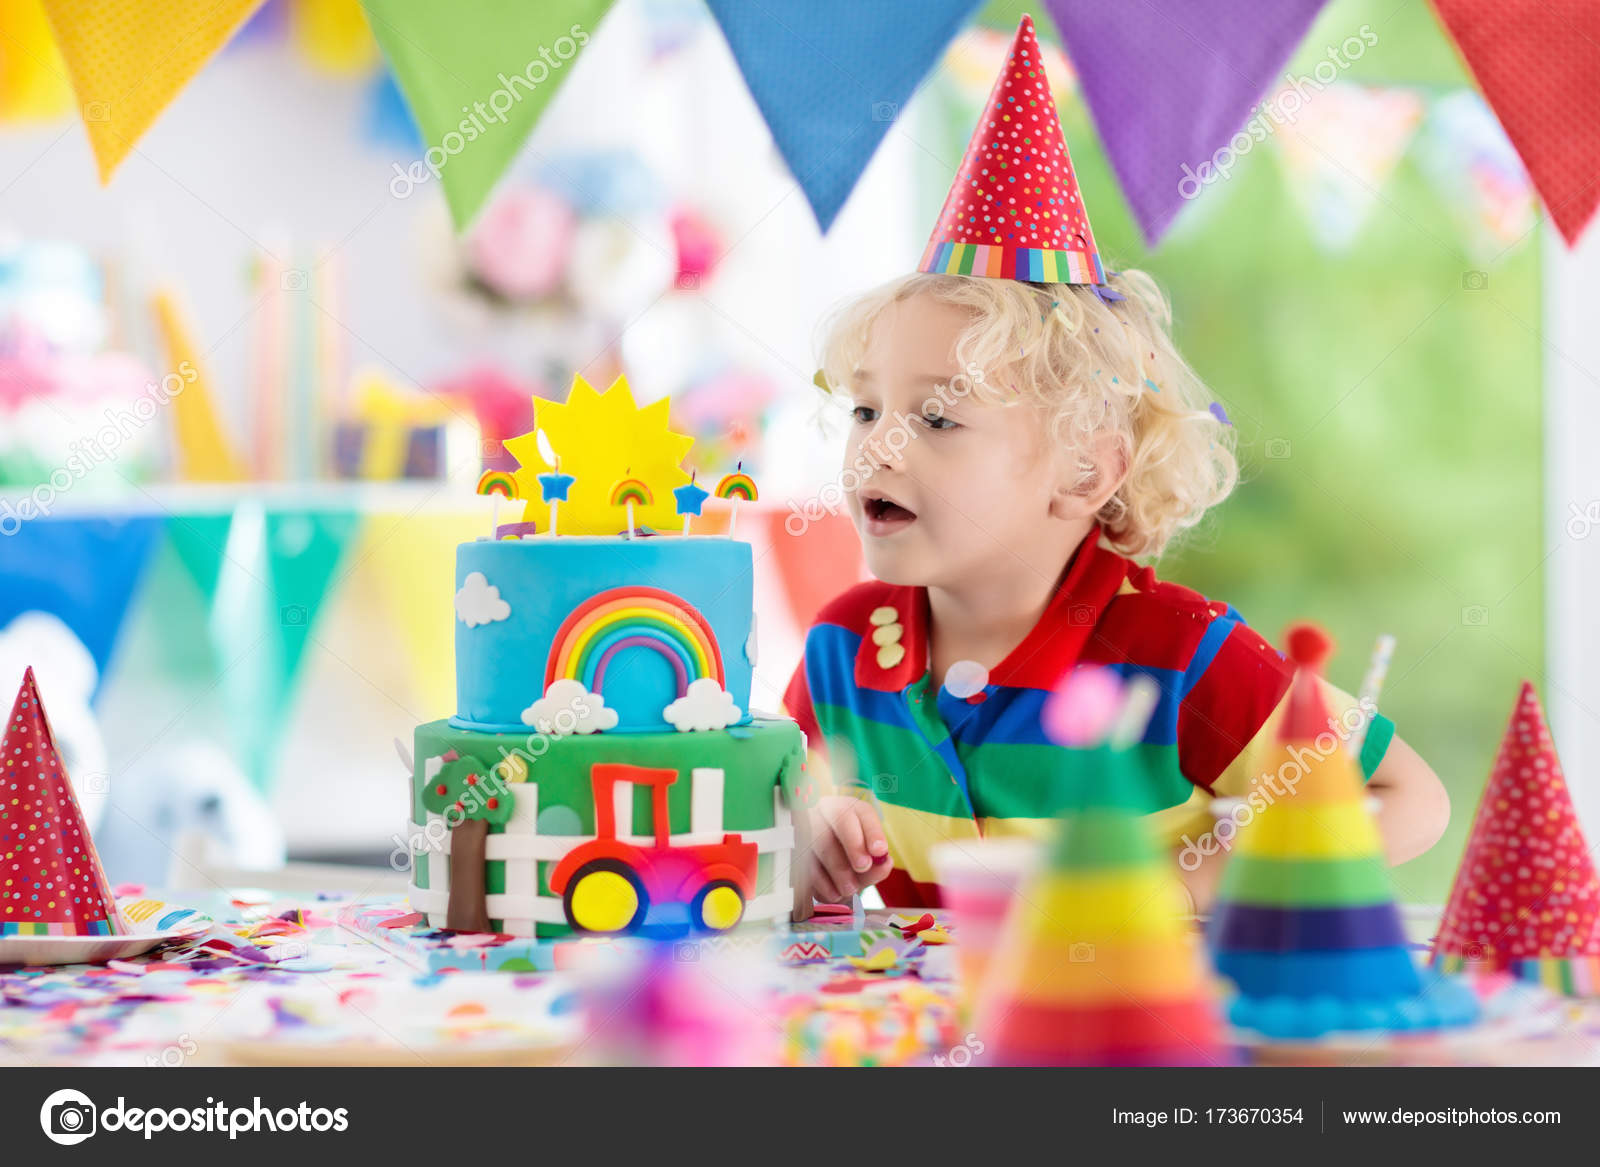 Kids Birthday Party Child Blowing Out Cake Candle Stock Photo